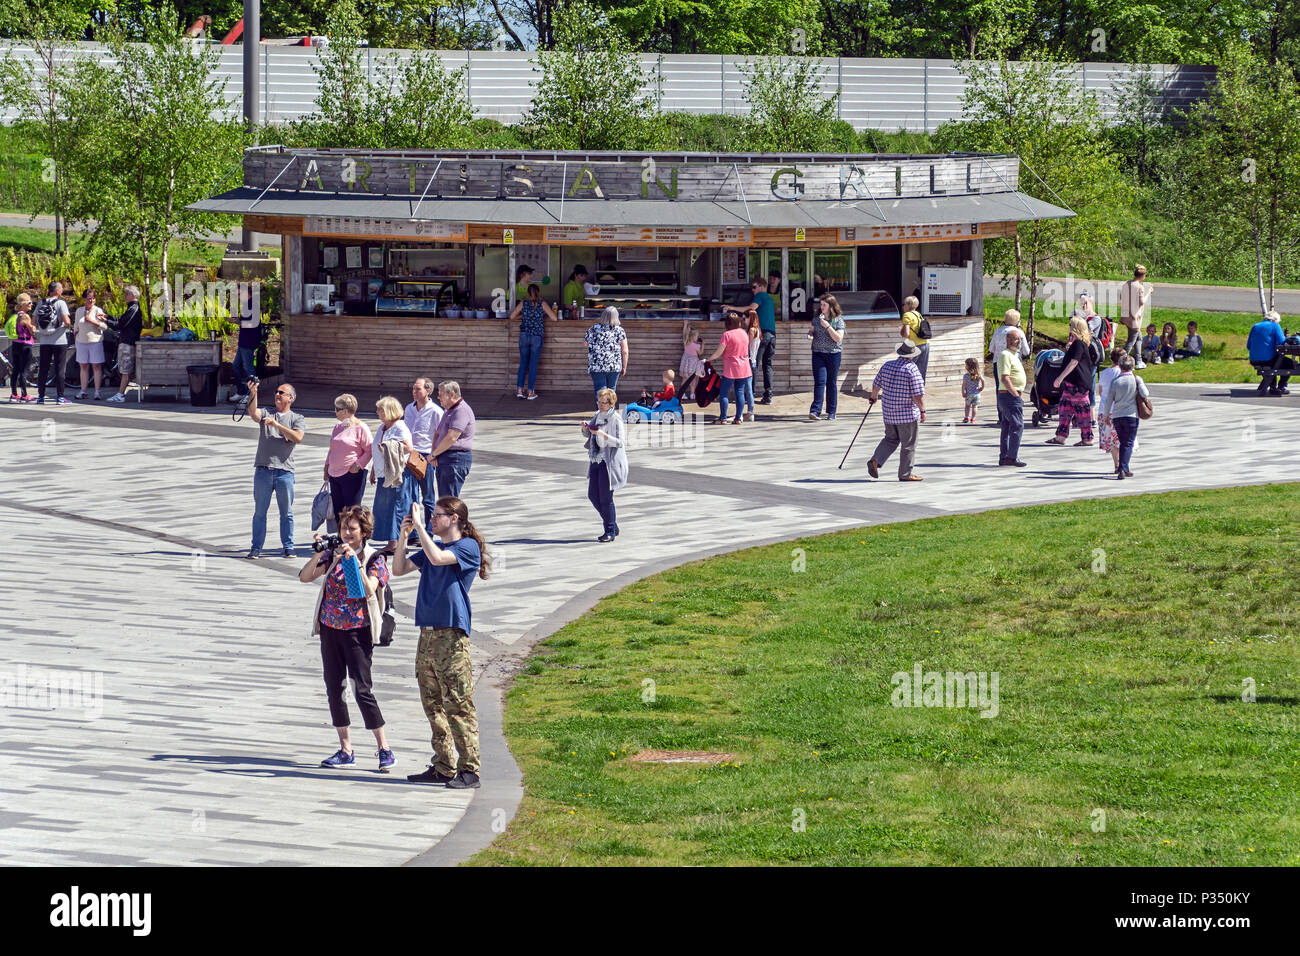 The Artisan Grill at The Helix park in Falkirk near Grangemount in Scotland UK with visitors taking pictures of the Kelpies. - Stock Image